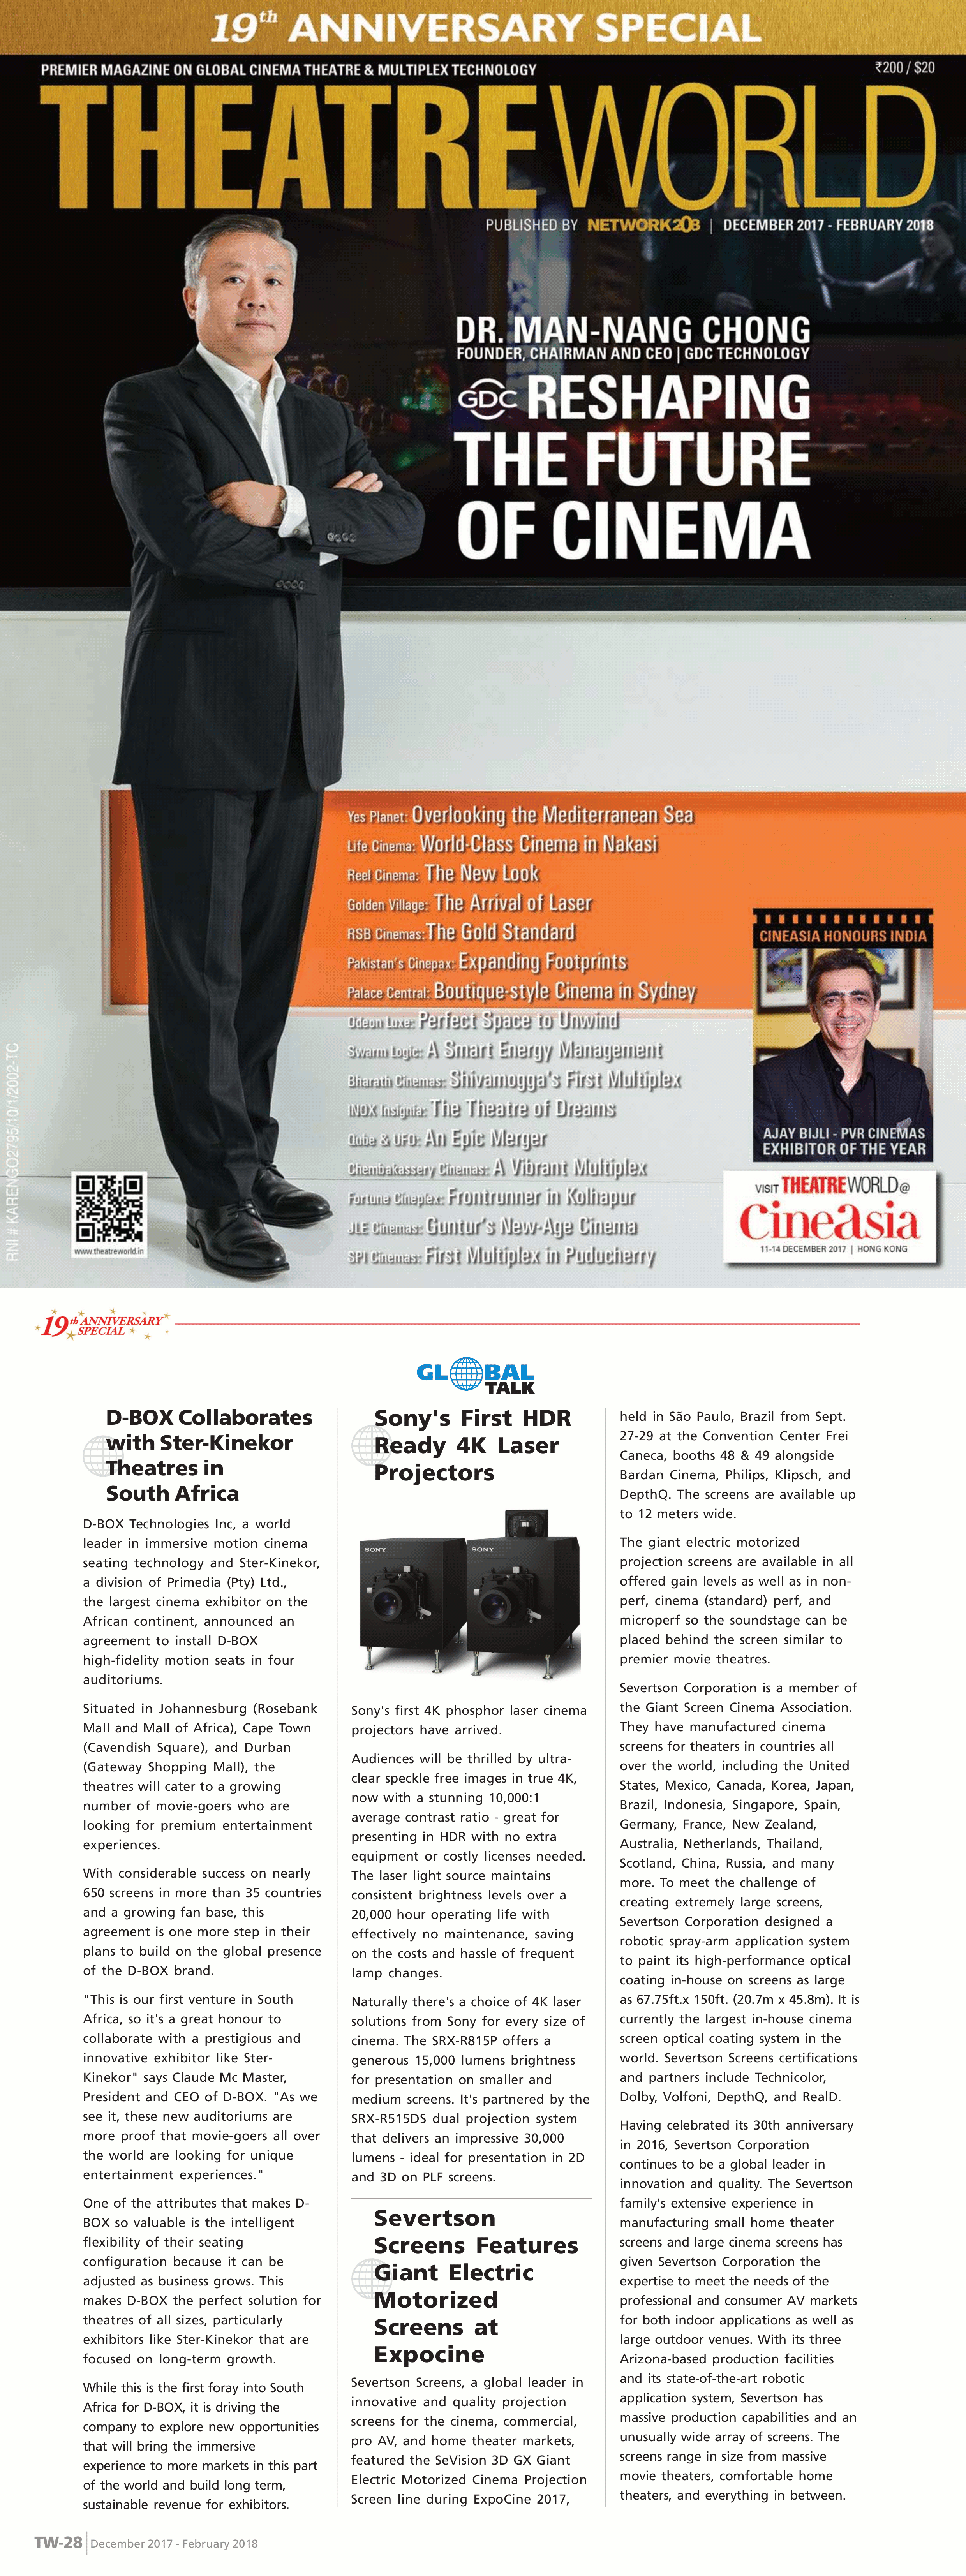 Severtson Screens was featured in a Theatre World magazine article about our Giant Electric motorized screens, as featured at ExpoCine 2017.